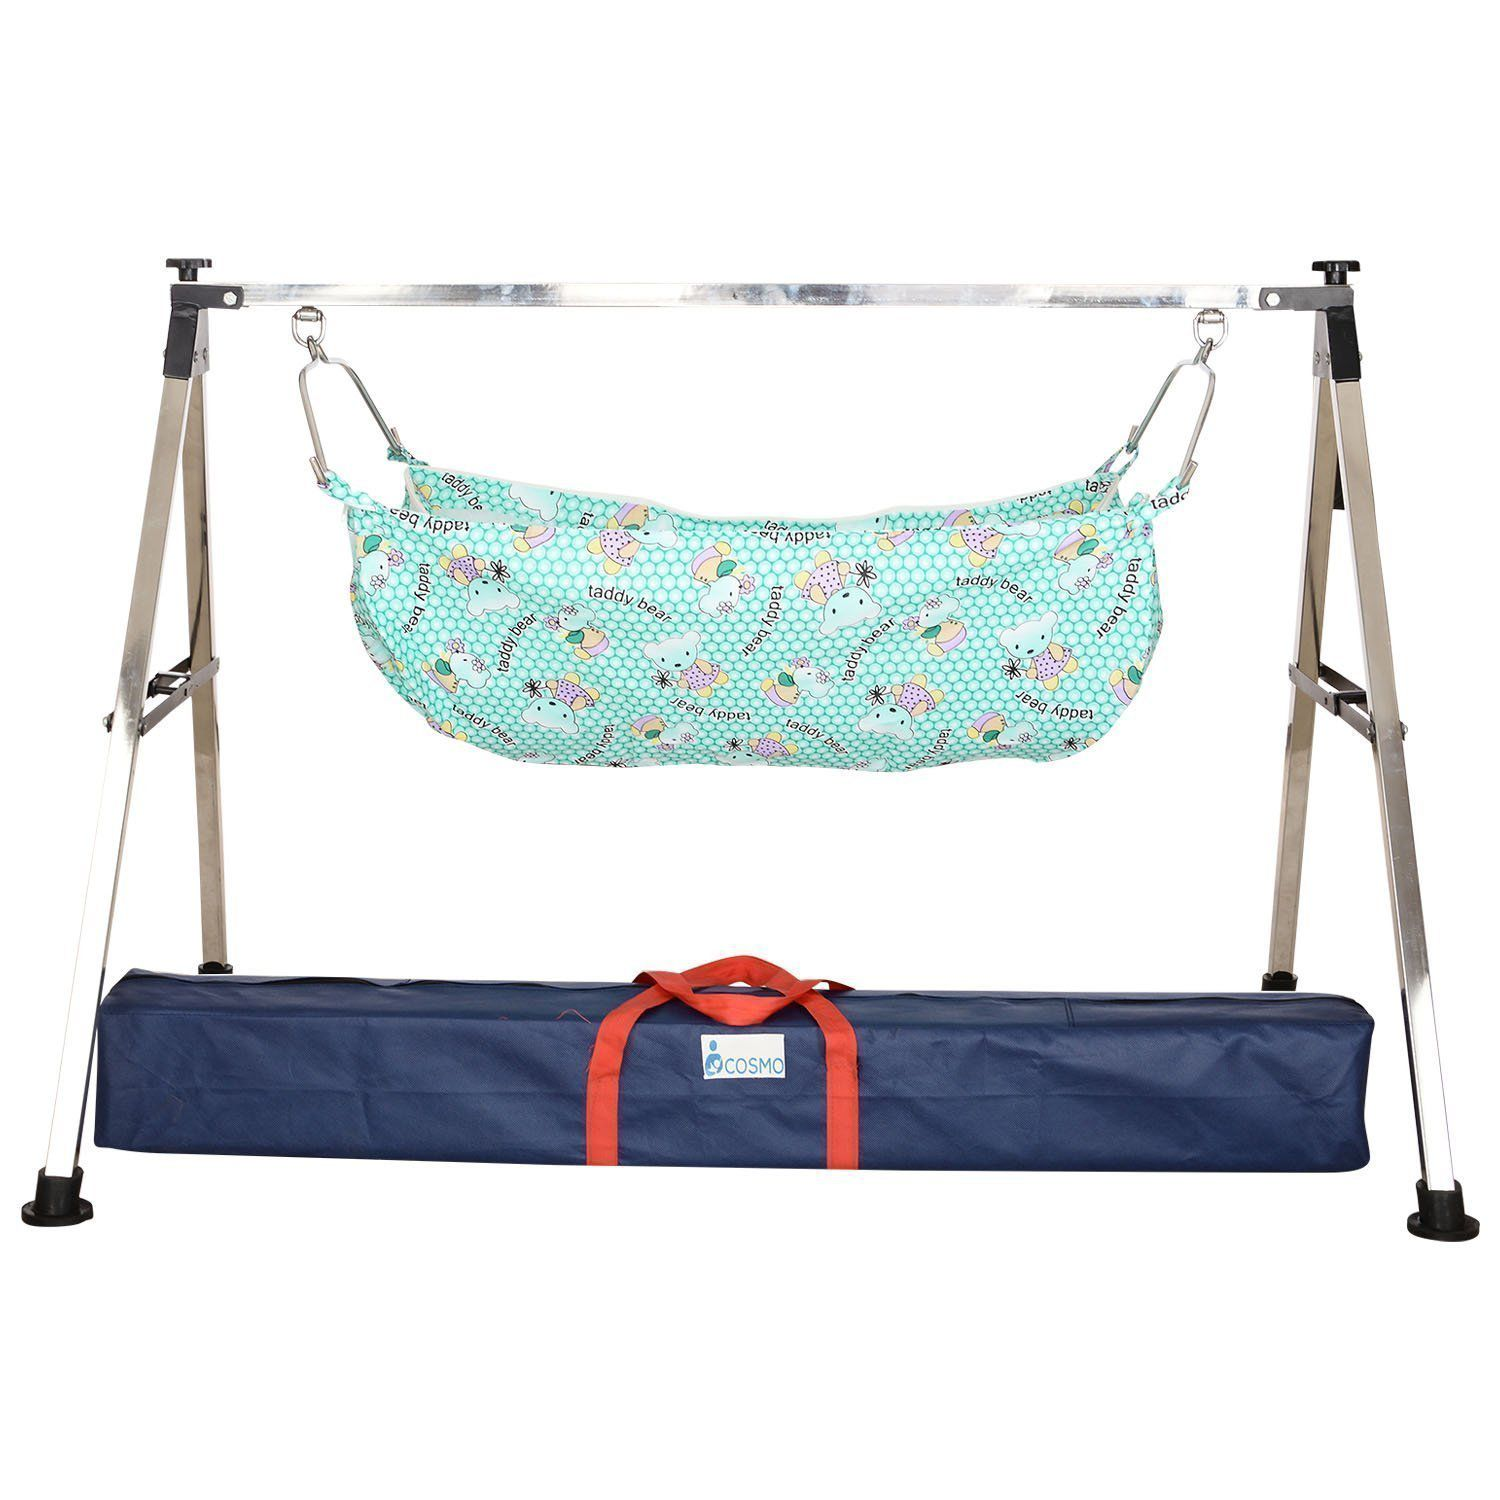 WESTTURN Indian Style Square Black Semi Folding Stainless Steel Cradle with Hammock